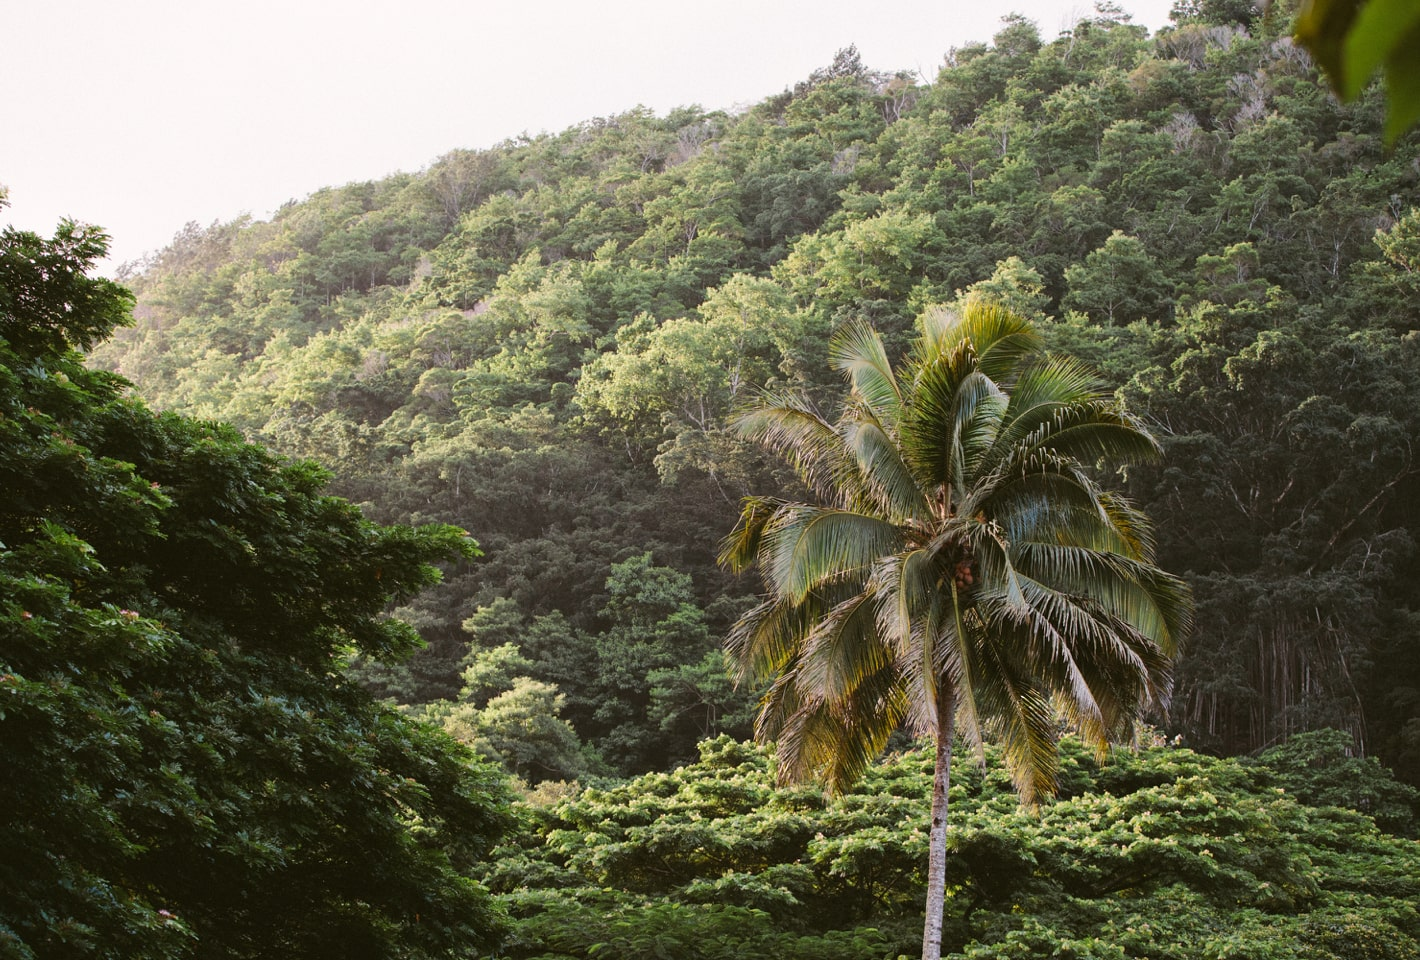 lucious green palm trees in Oahu, Hawaii